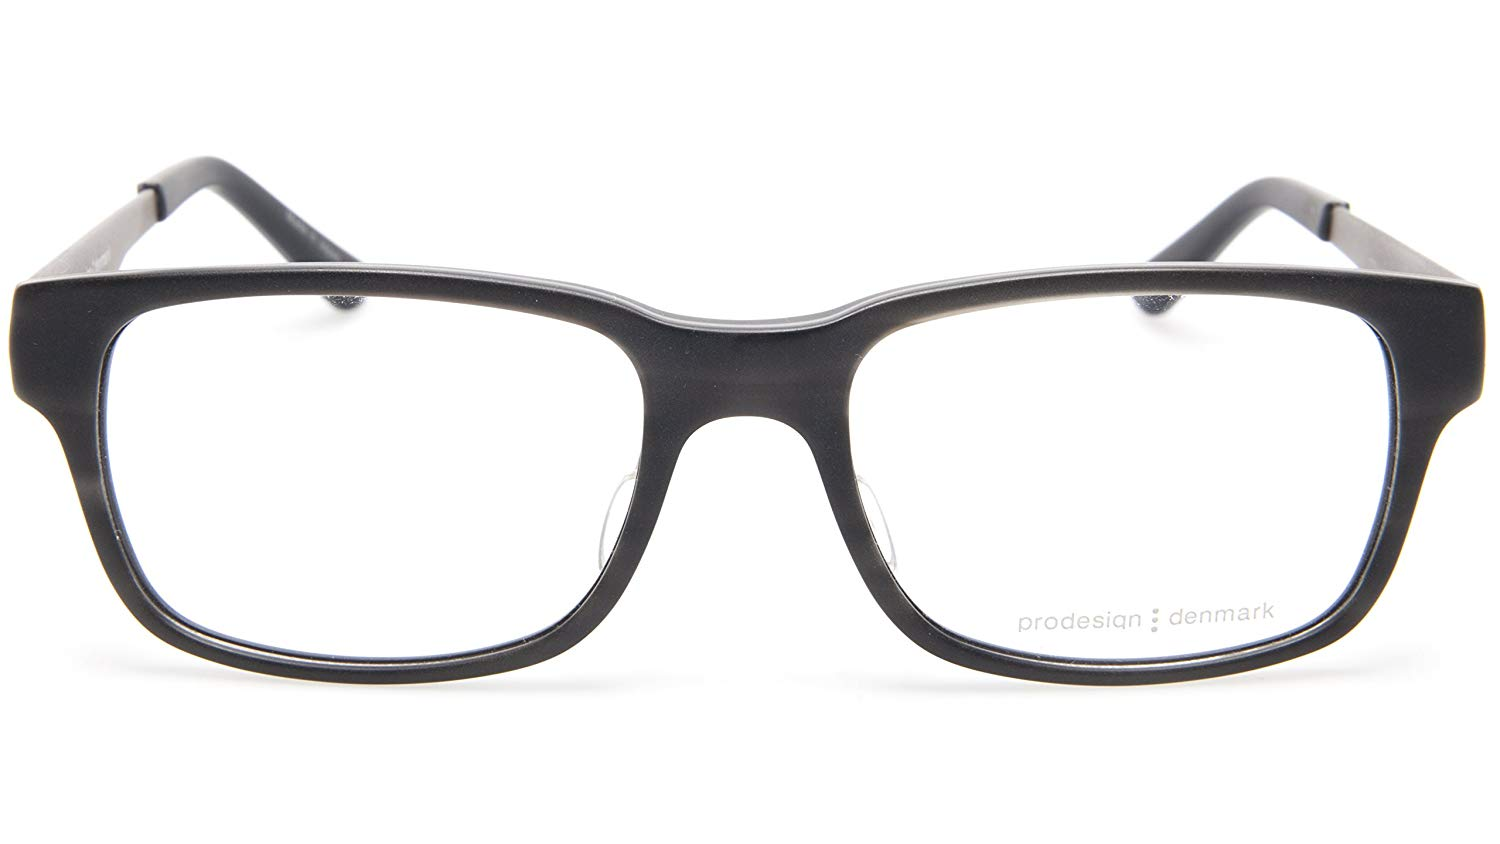 bb88dba080 Buy ProDesign Denmark 5305 Mens Rx Ready Exclusive Designer Half-rim ...